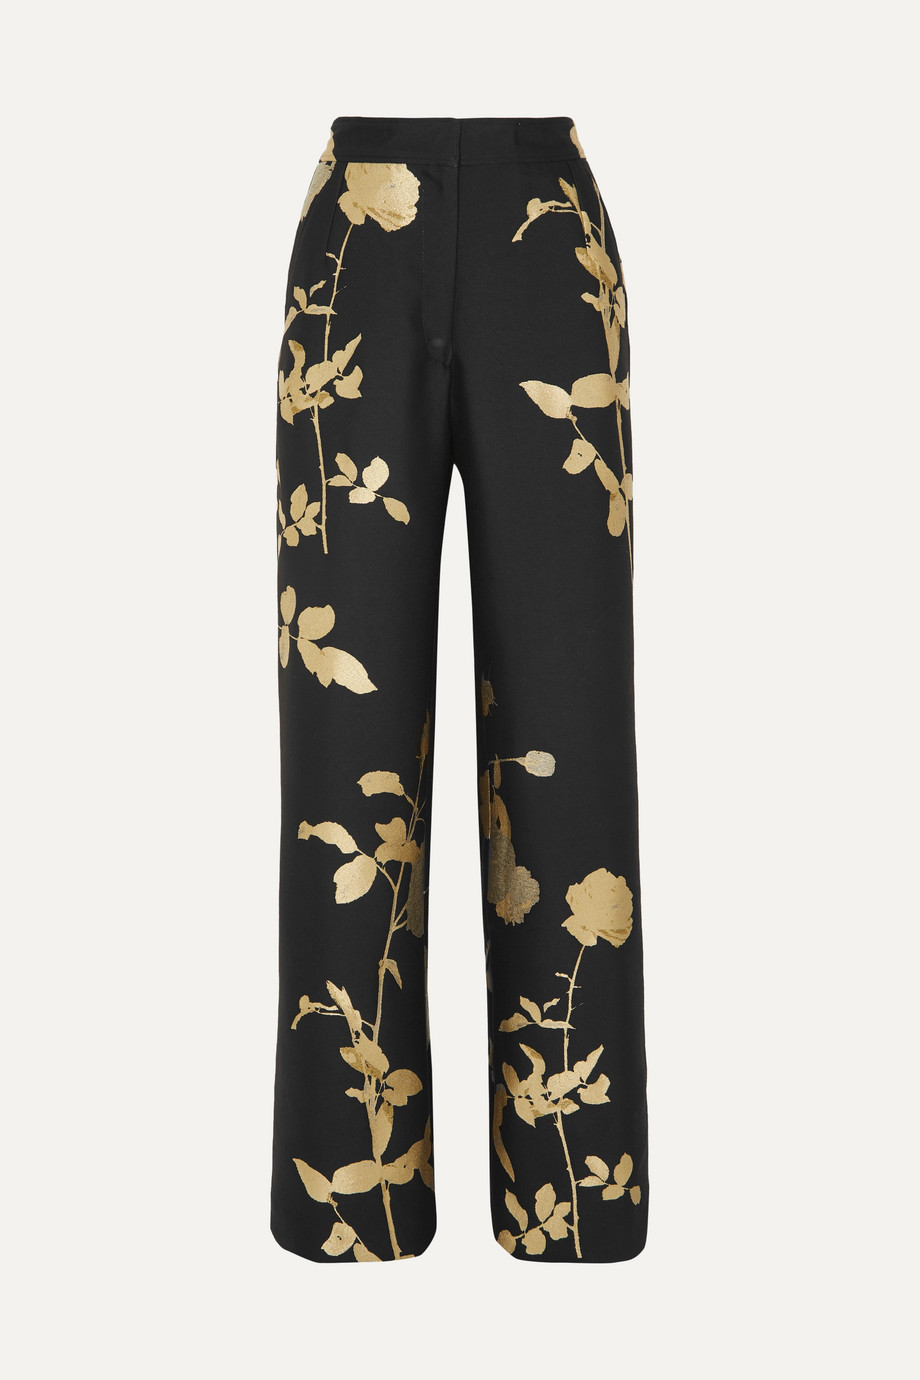 Dries Van Noten black and gold floral jacquard trousers